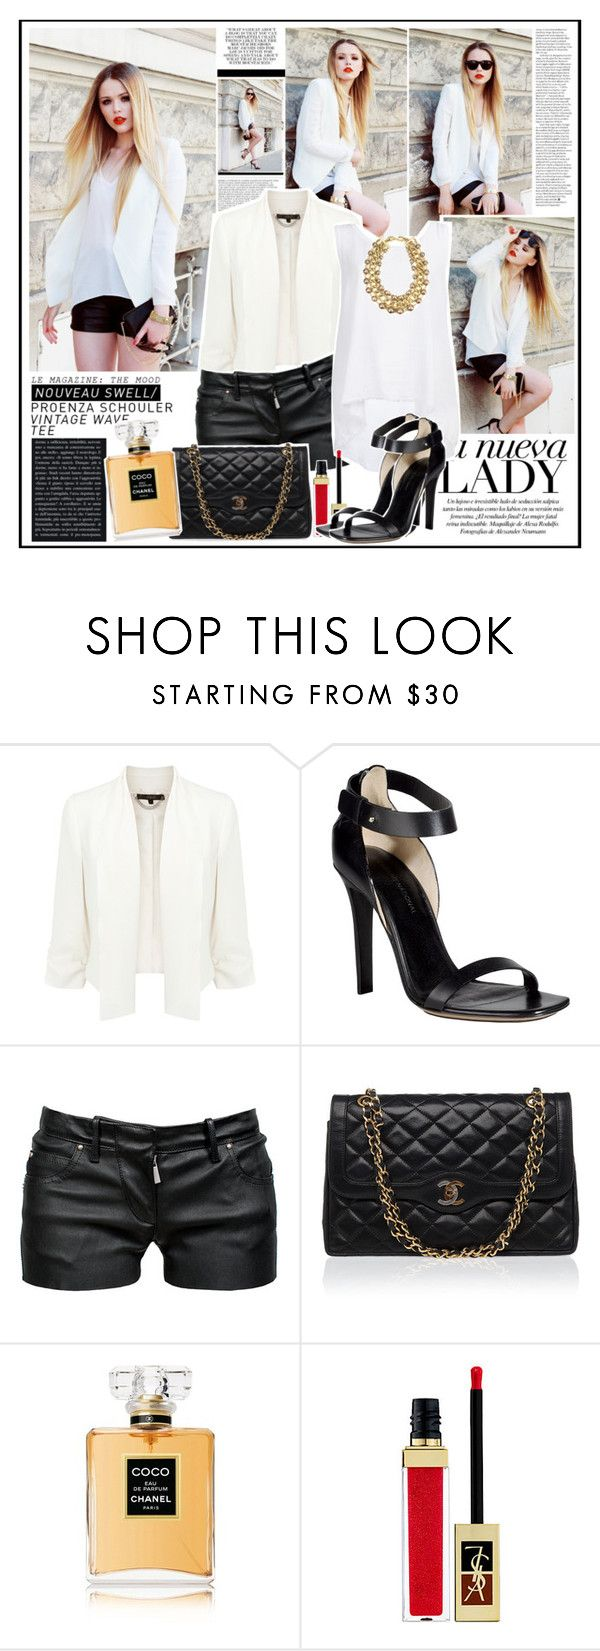 """""""What Goes Around Comes Back Around"""" by oriya ❤ liked on Polyvore featuring Unis, Coast, COSTUME NATIONAL, Balmain, Enza Costa, Chanel, Yves Saint Laurent and AK Anne Klein"""